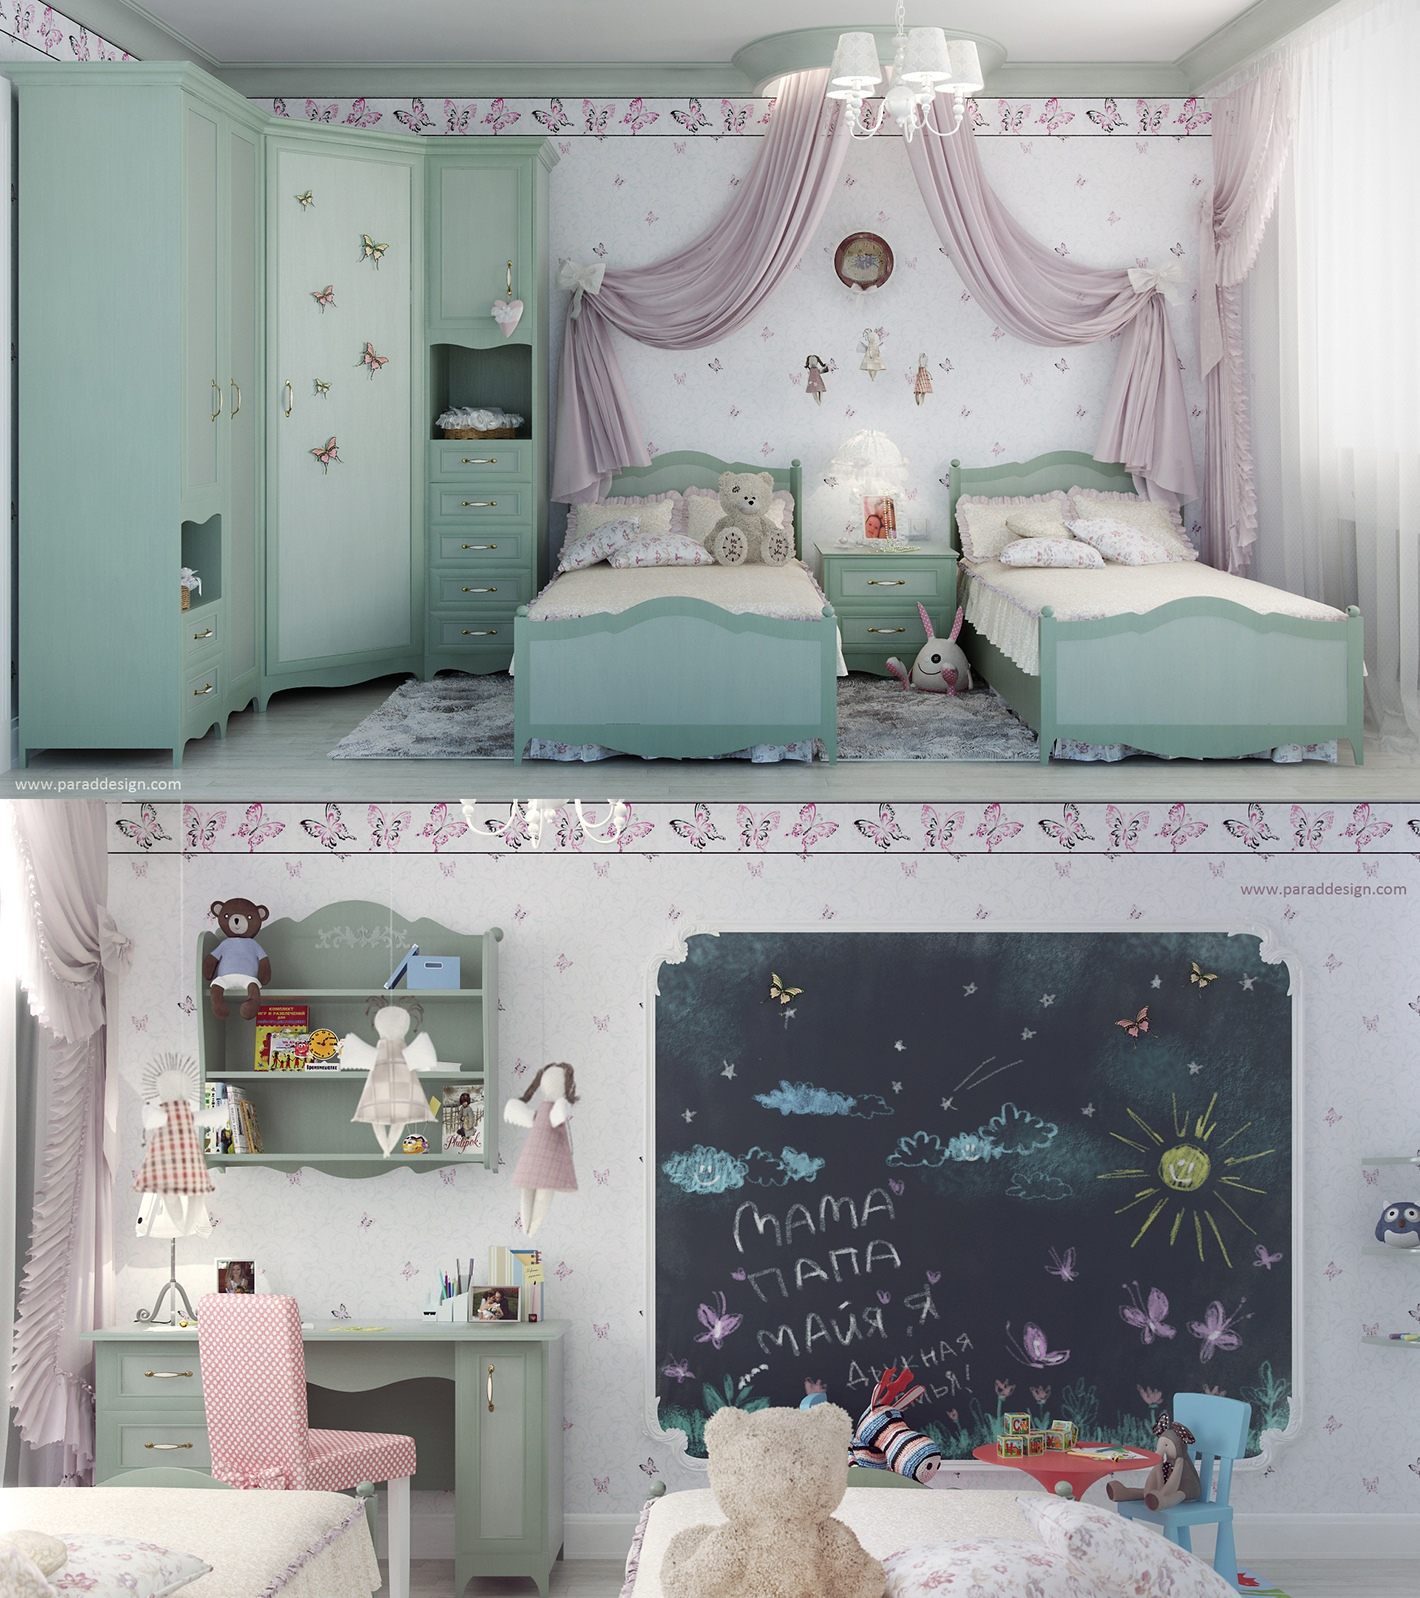 2 little girls bedroom 7 interior design ideas - Girls bed room ...